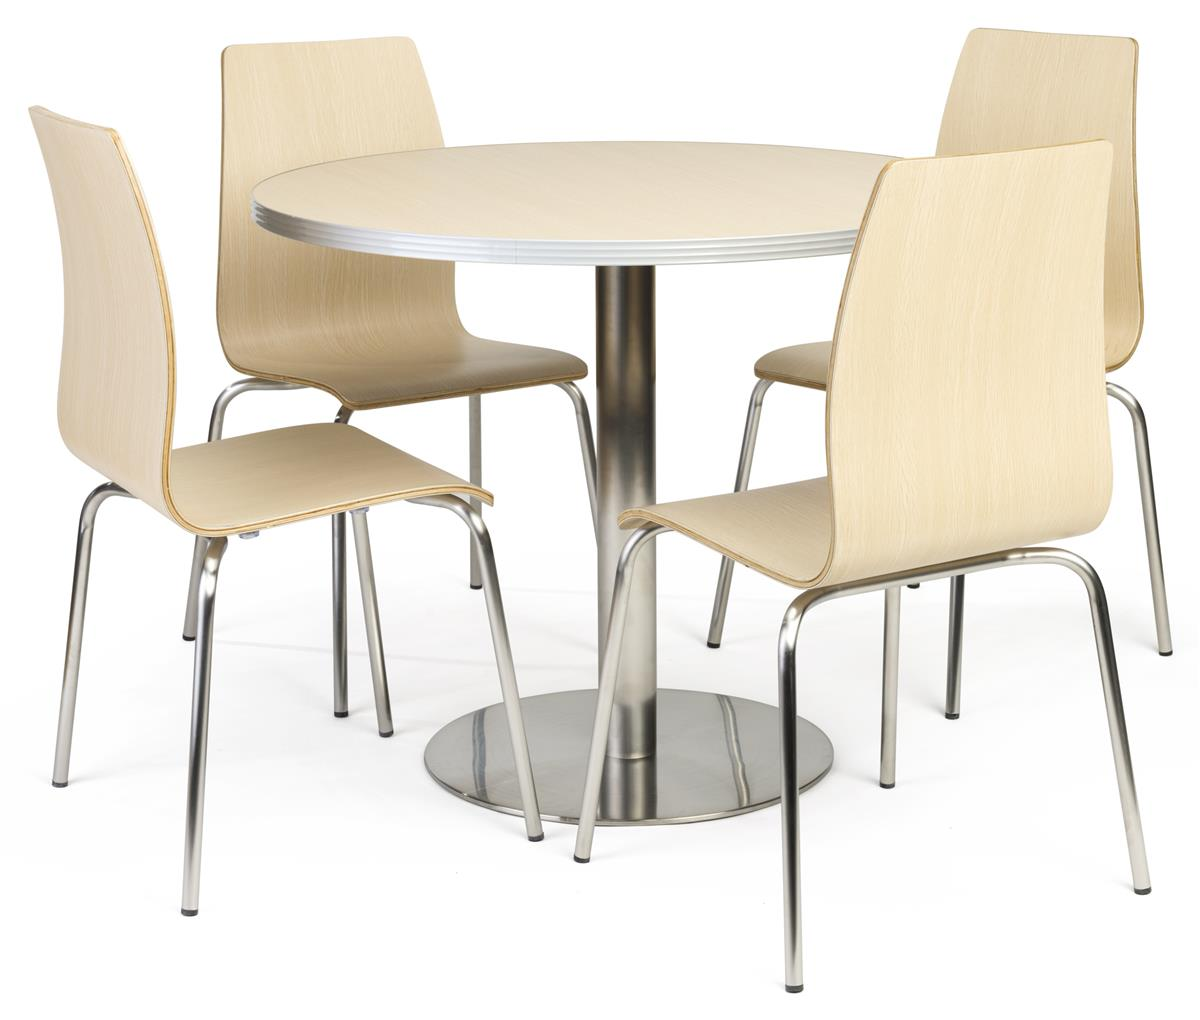 Cafeteria Breakroom Round Dining Table Set 5 Piece Set